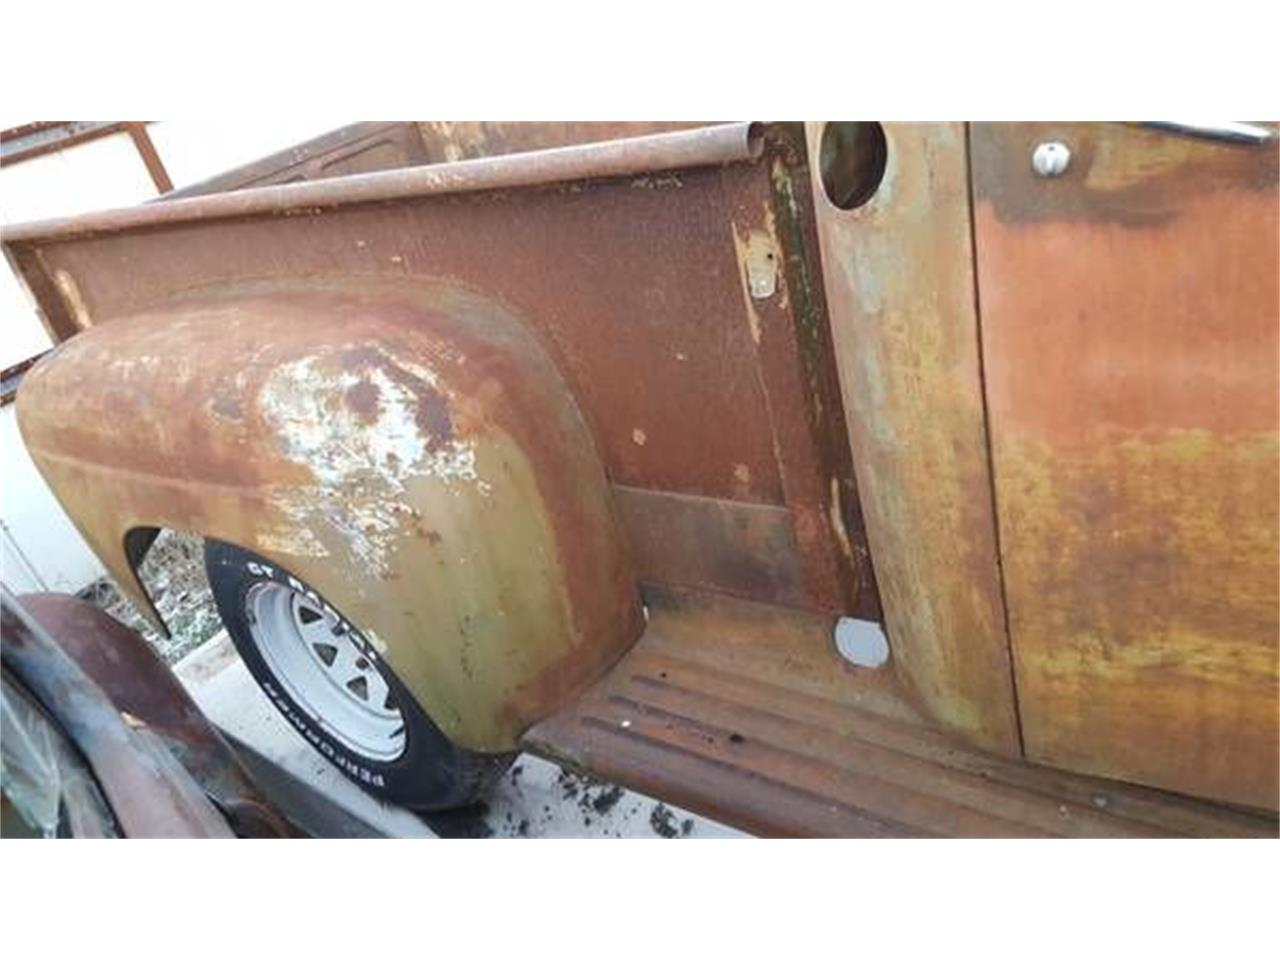 Large Picture of Classic 1950 Ford Pickup - $8,395.00 Offered by Classic Car Deals - O08J